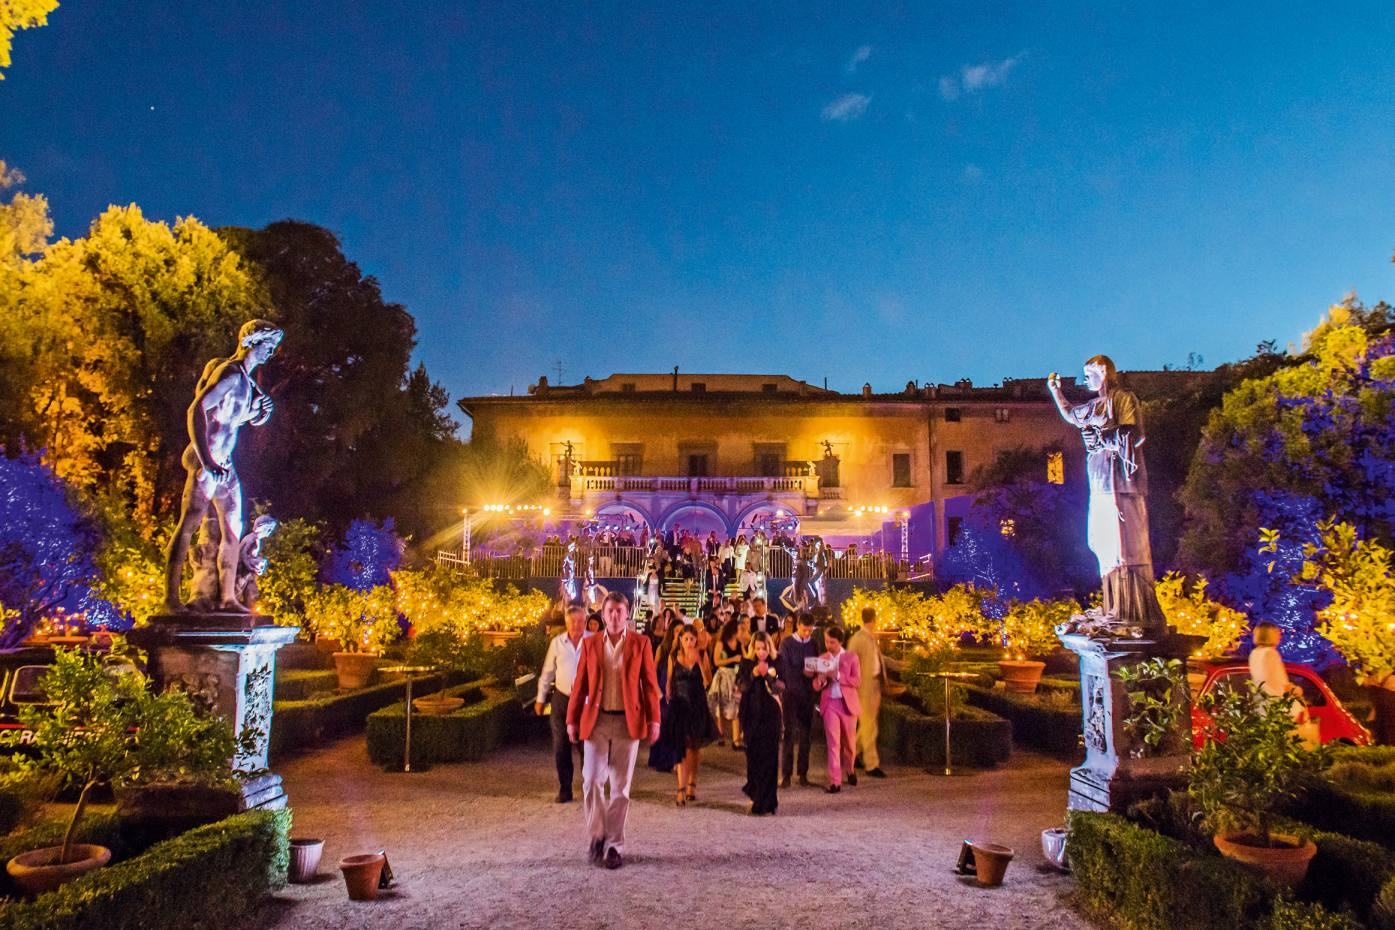 The New Generation Festival, nowin its second year, takes place in the gardens of Palazzo Corsini al Prato, Florence